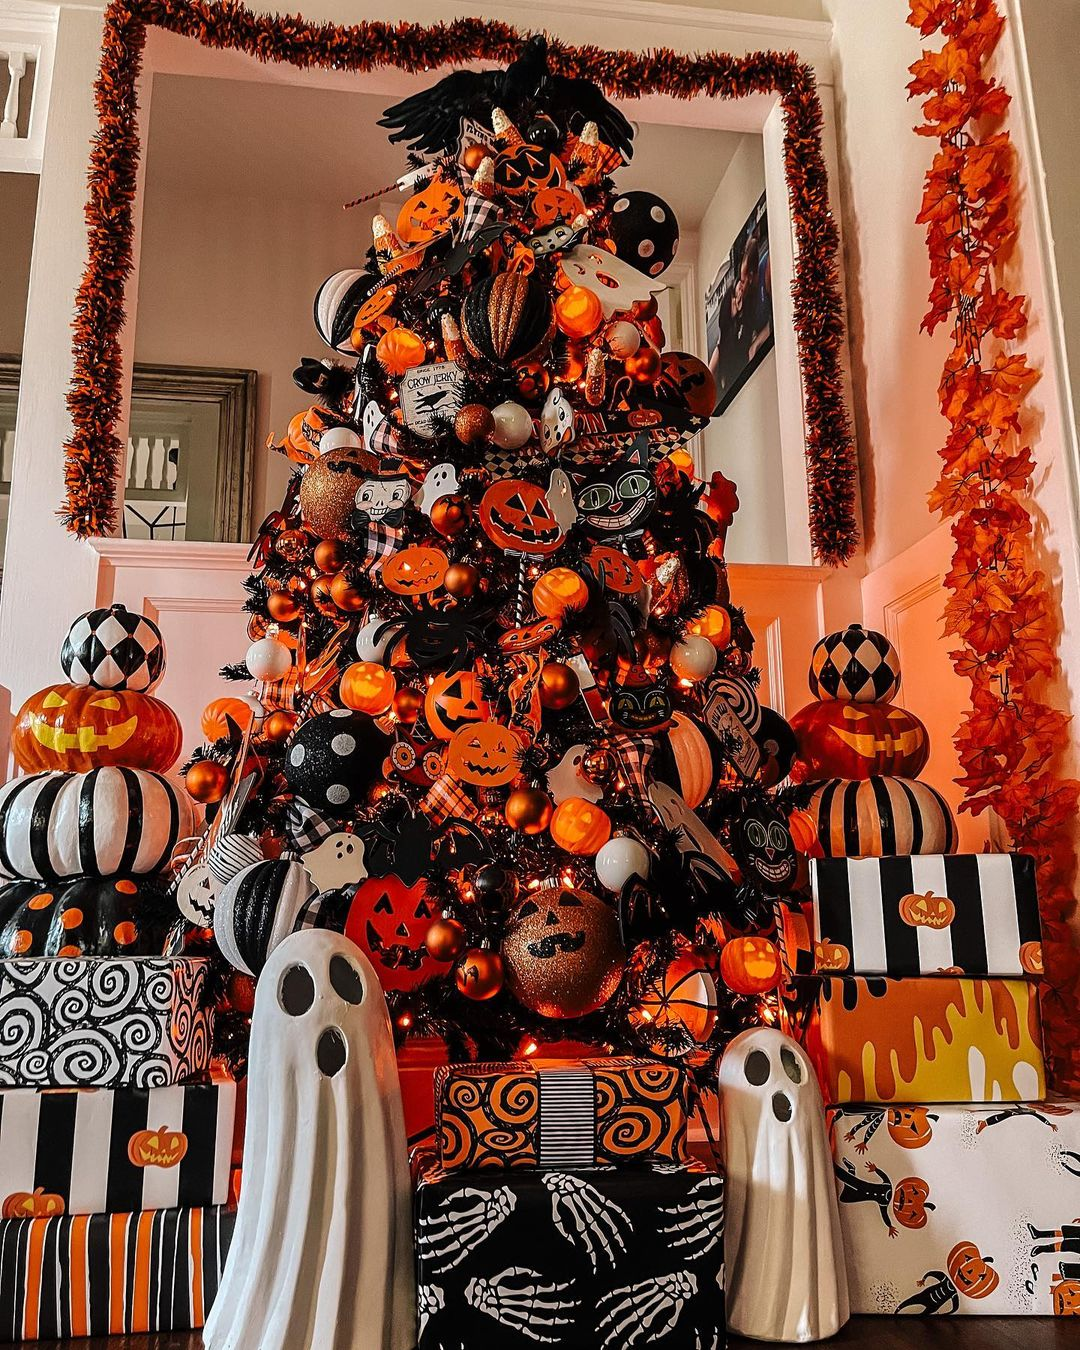 The Ultimate Spooky Tree by Rachael